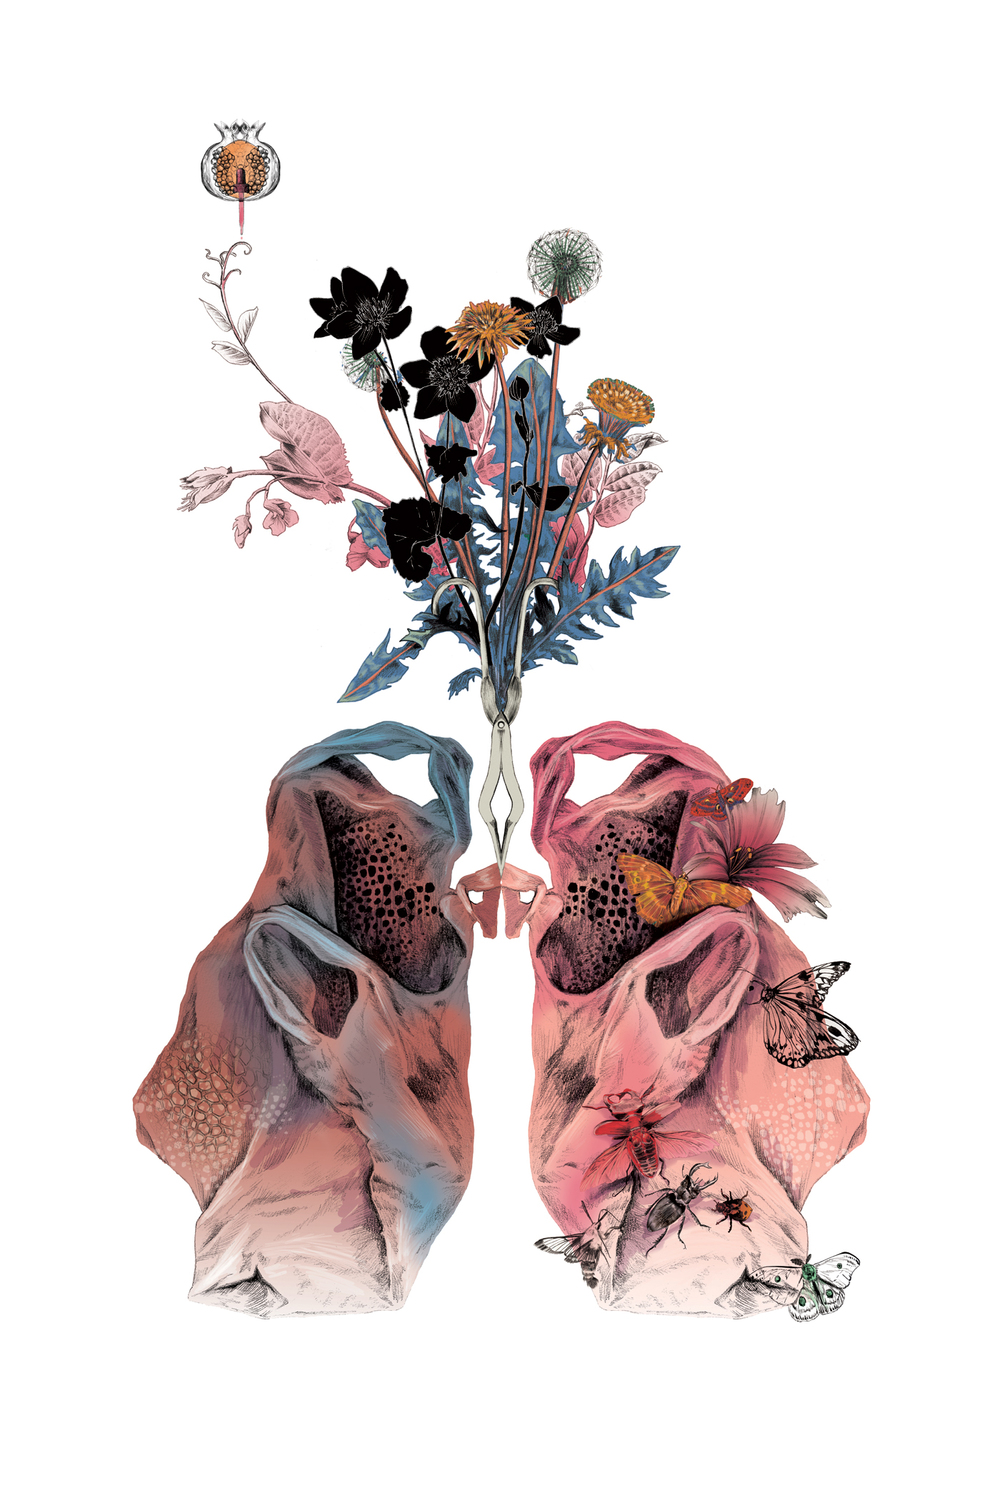 fig. 1. Lungs artwork